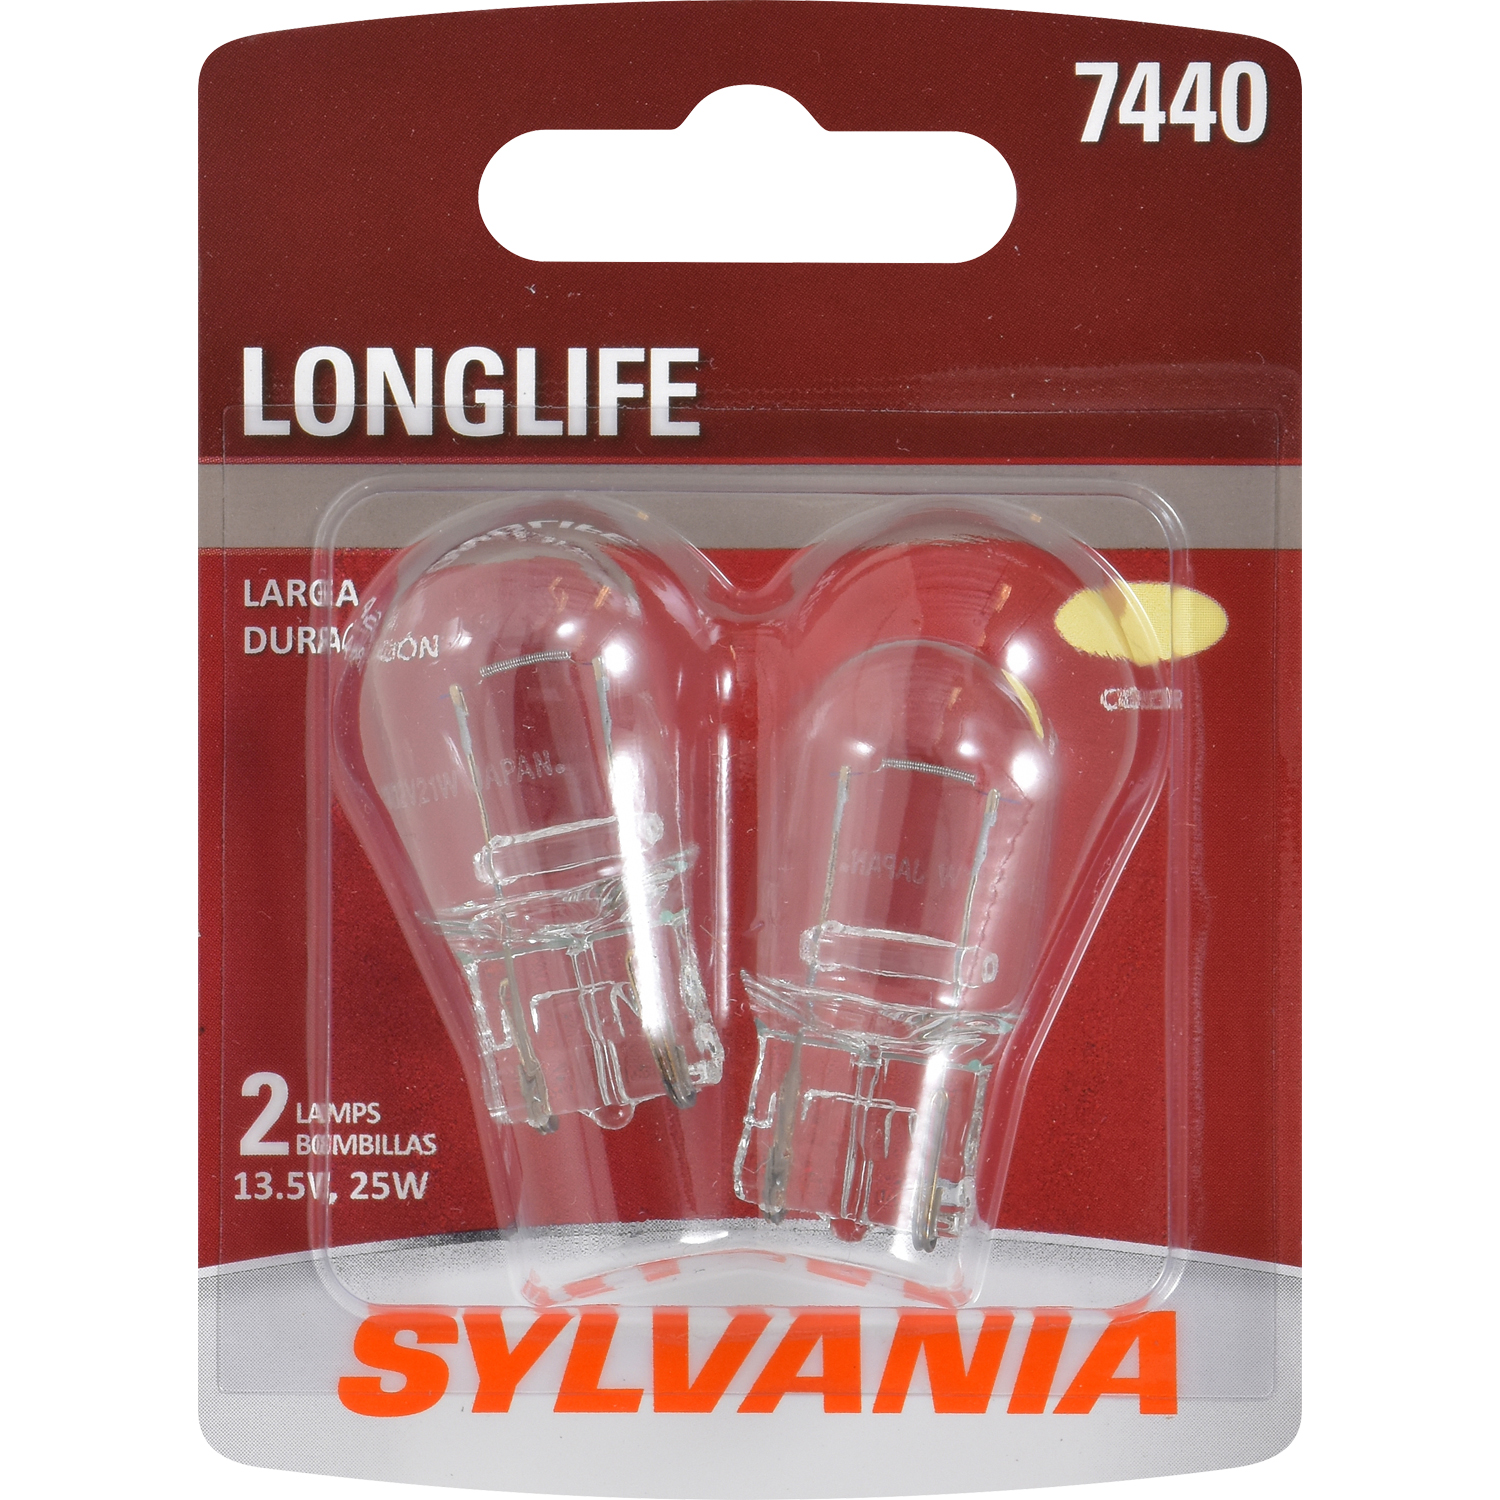 SYLVANIA 7440 Long Life Mini Bulb, Pack of 2